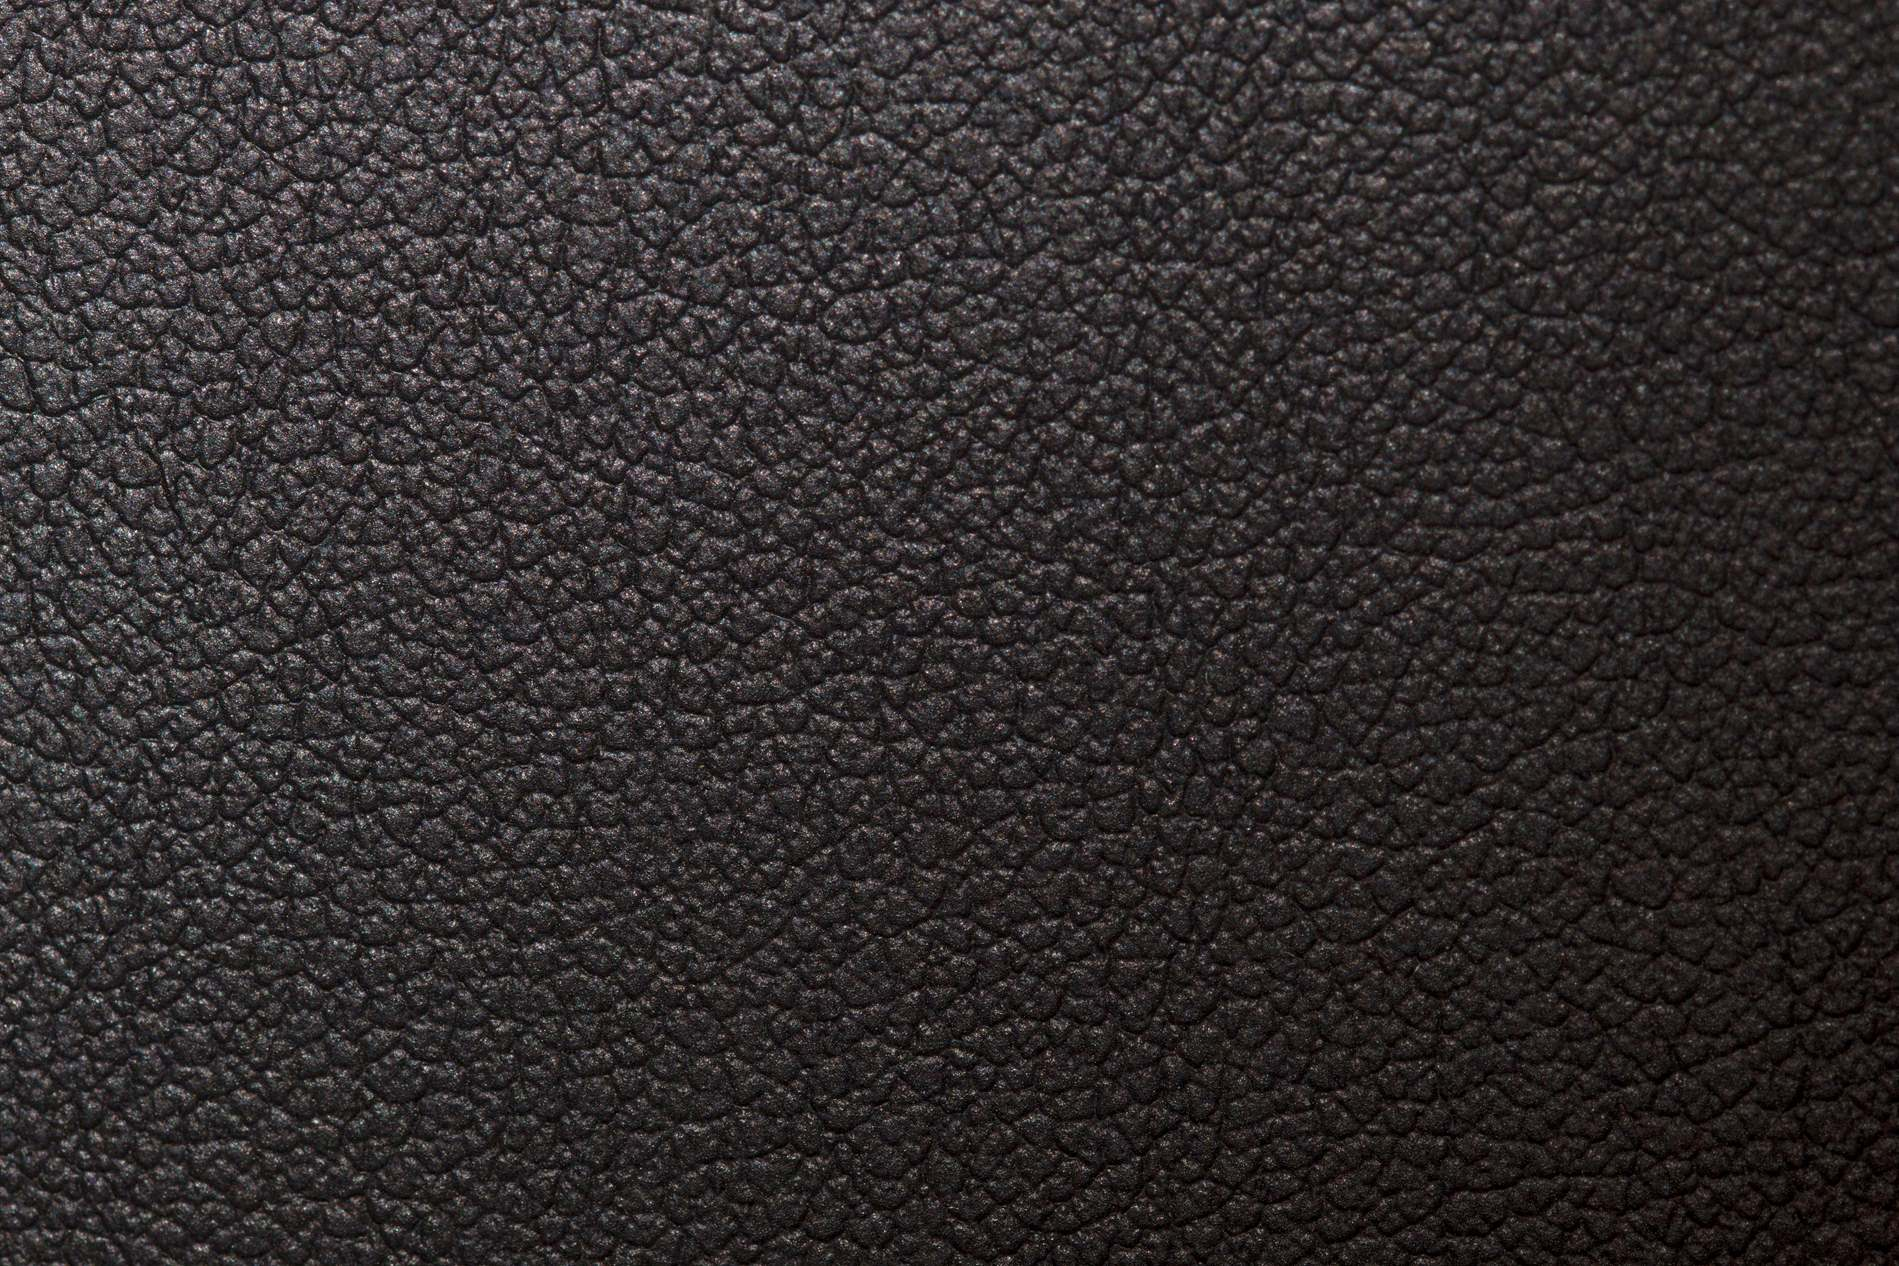 Black Artificial Leather Texture Photohdx